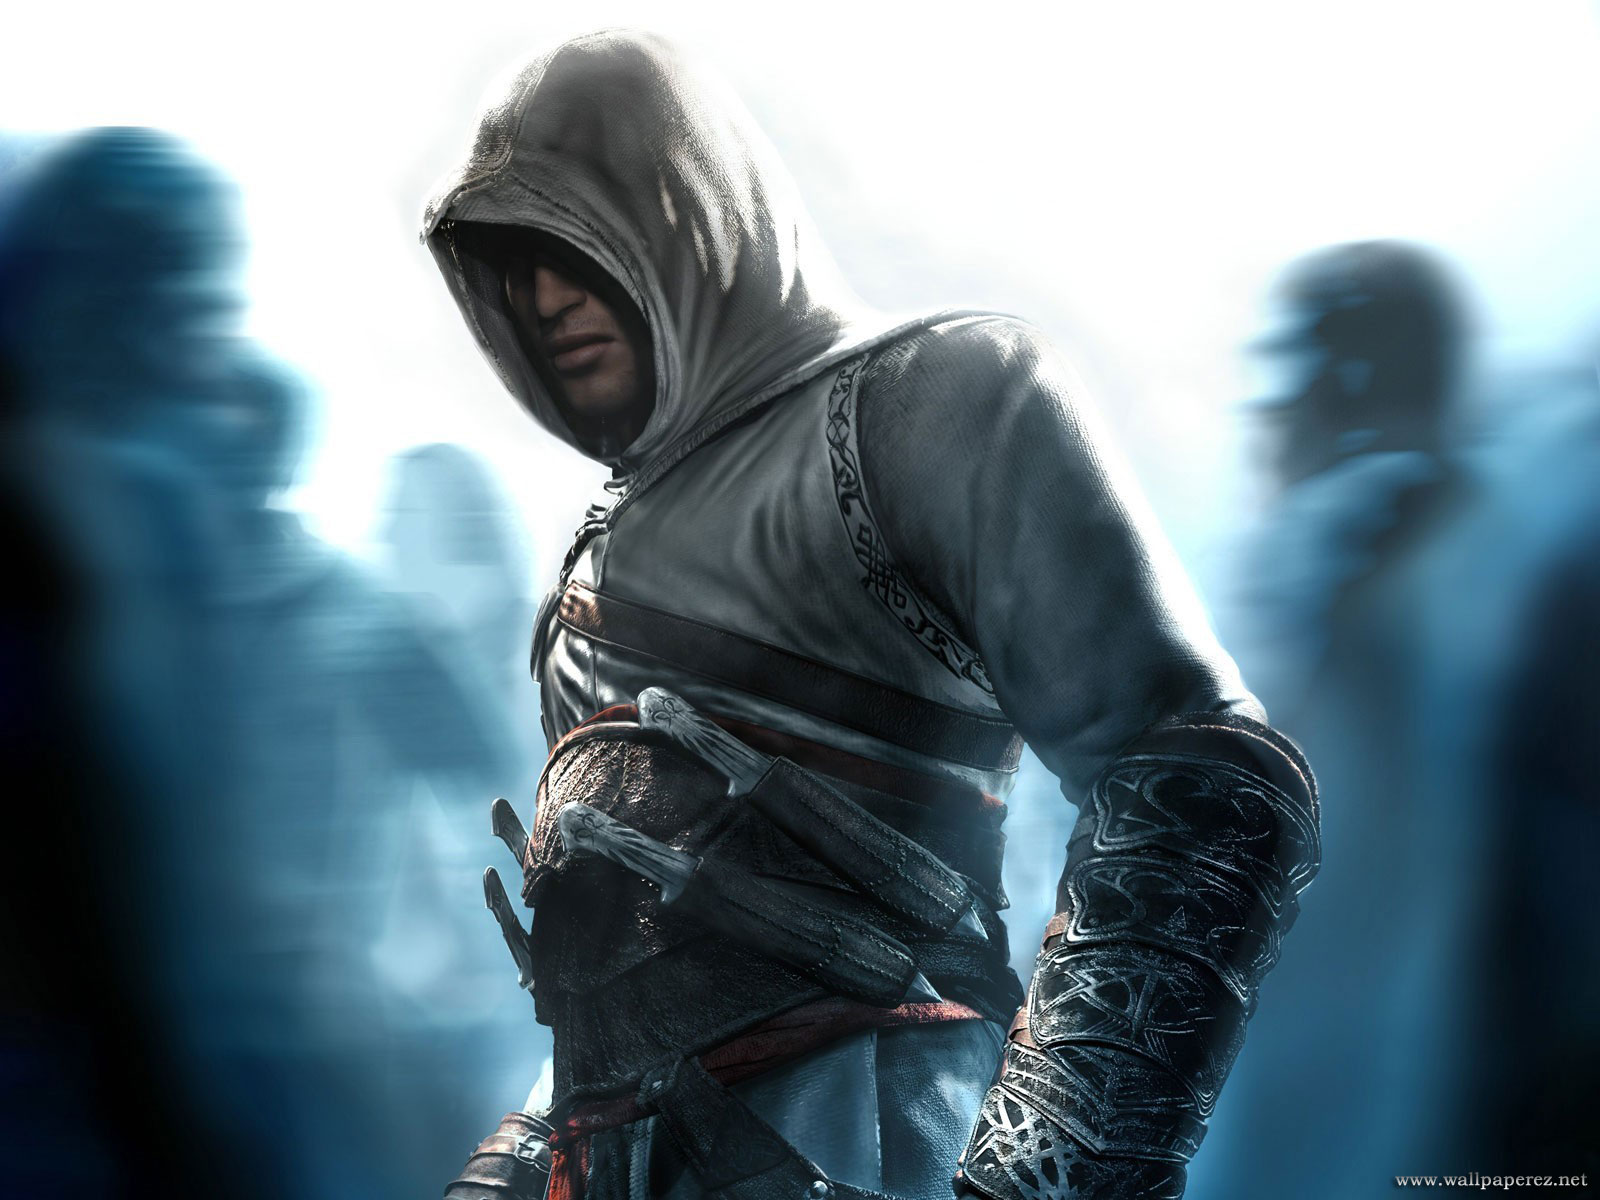 http://4.bp.blogspot.com/-ZJnsYgLn4sk/TZnfoYS4LeI/AAAAAAAABXE/pQEx0WCJN7o/s1600/Assassins-Creed-wallpaper-815.jpg